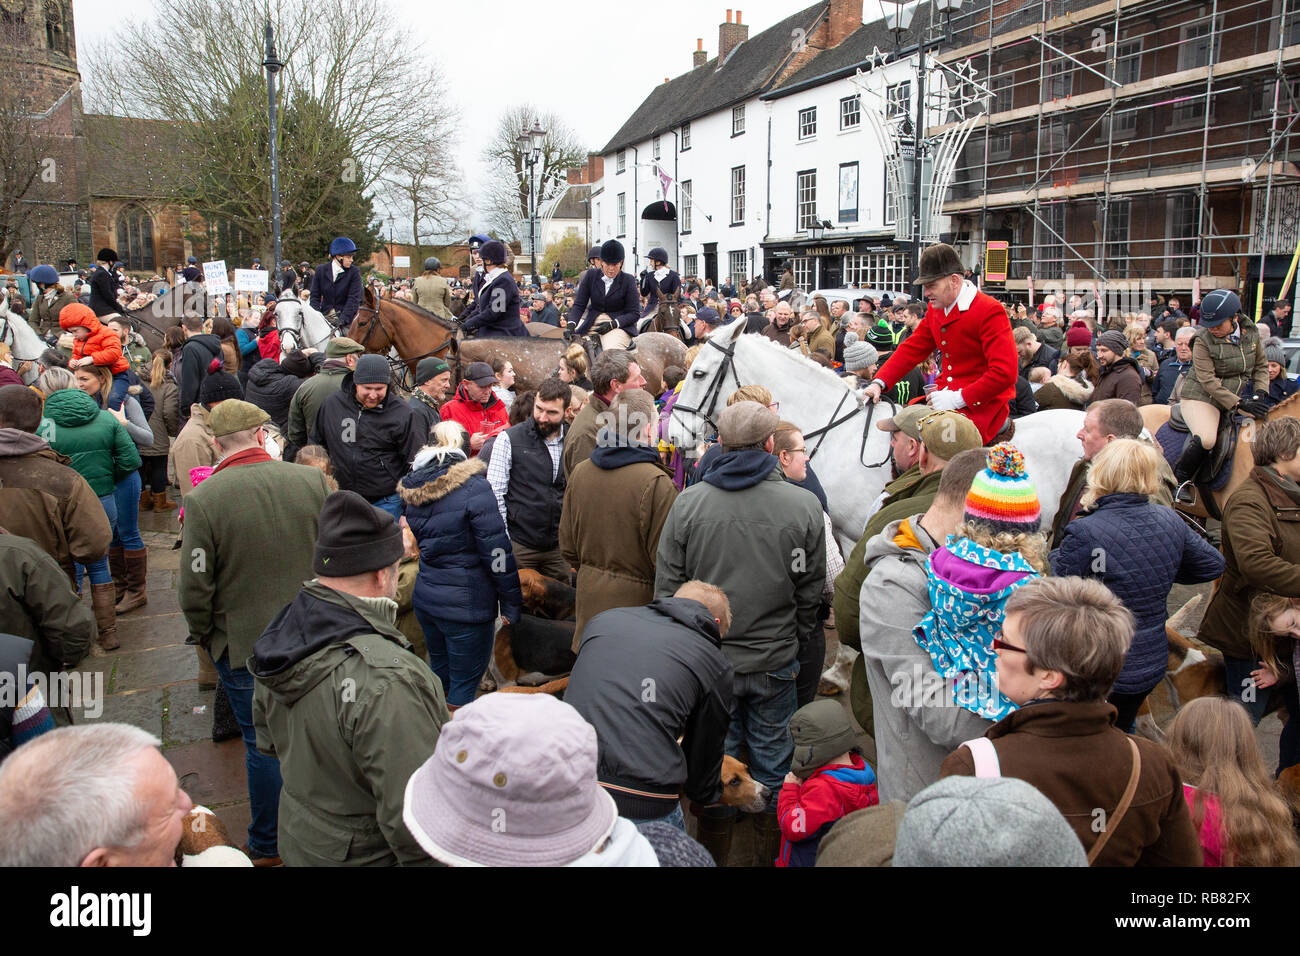 Atherstone Hunt parading in the market square watched by anti hunt protestors - Stock Image